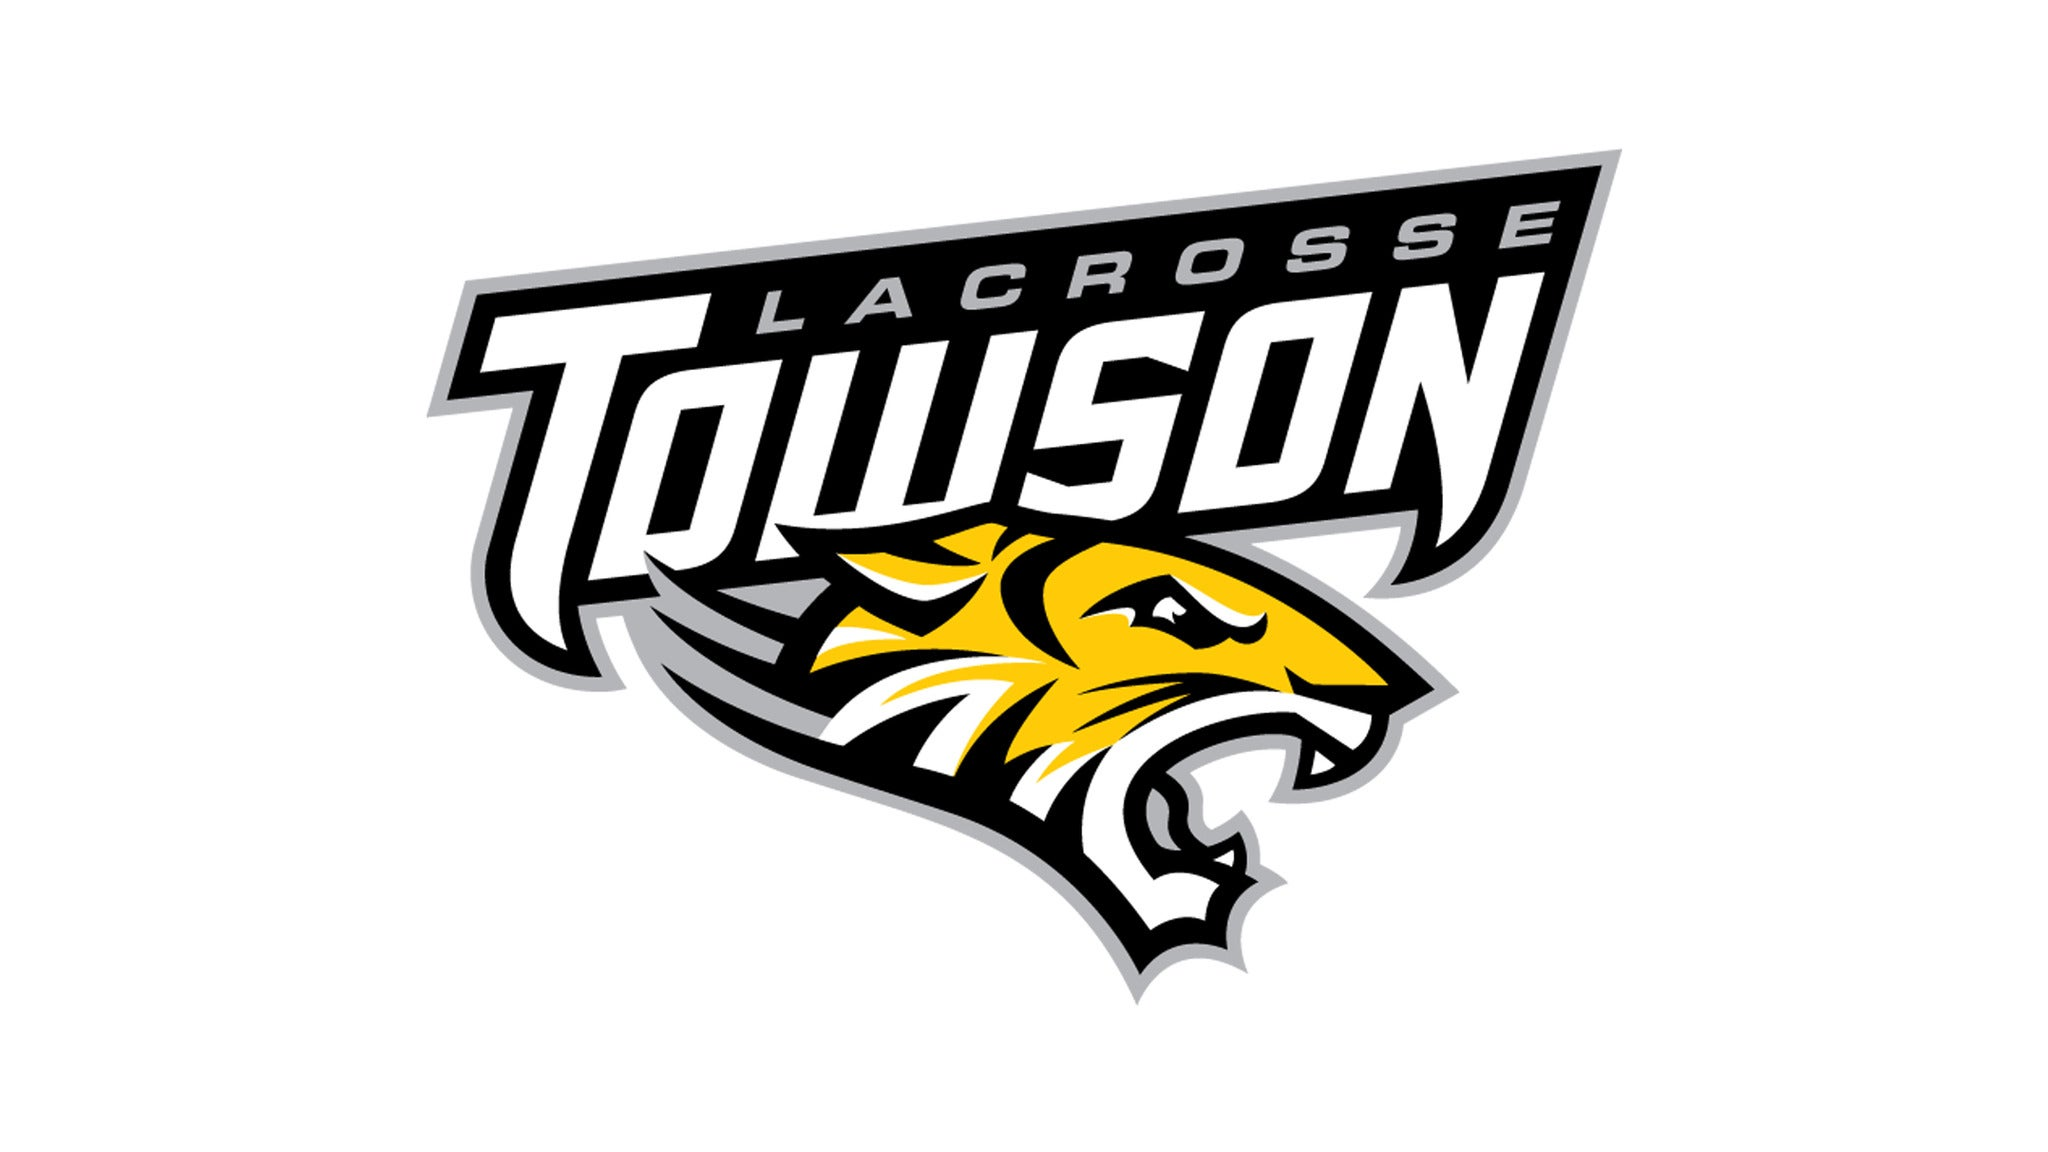 2020 Men's Lacrosse Season